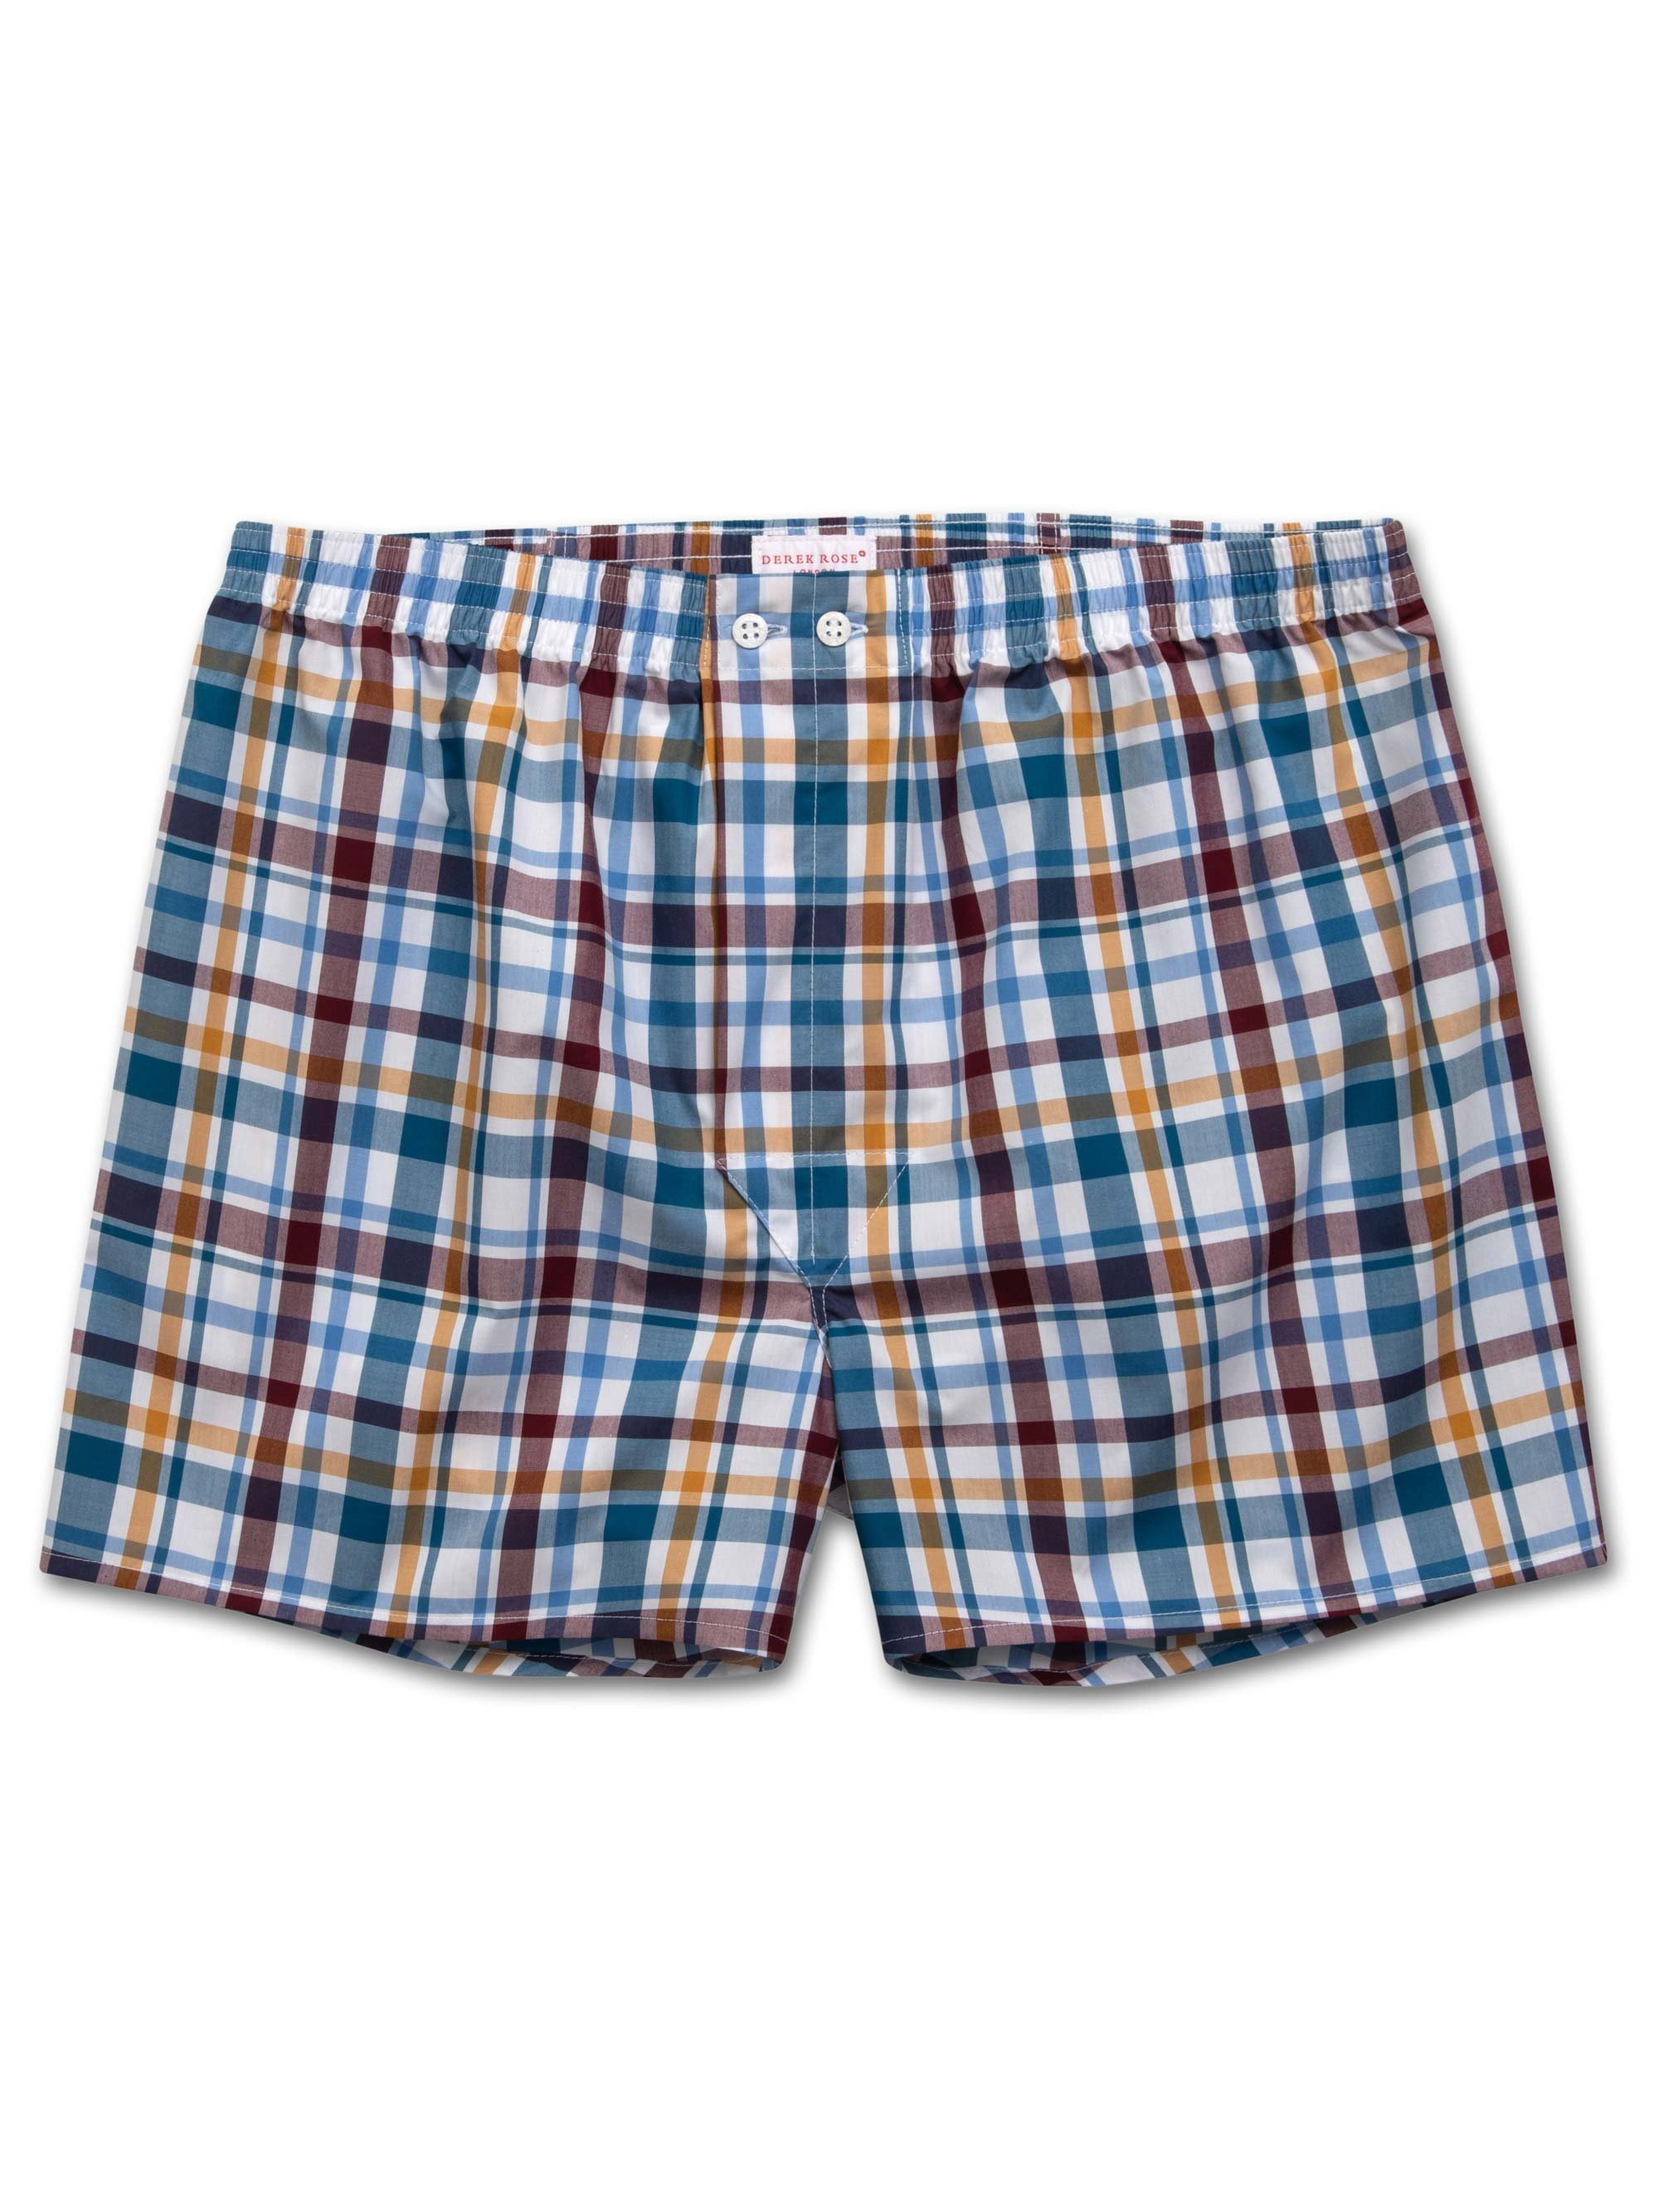 Men's Classic Fit Boxer Shorts Barker 25 Cotton Check Multi